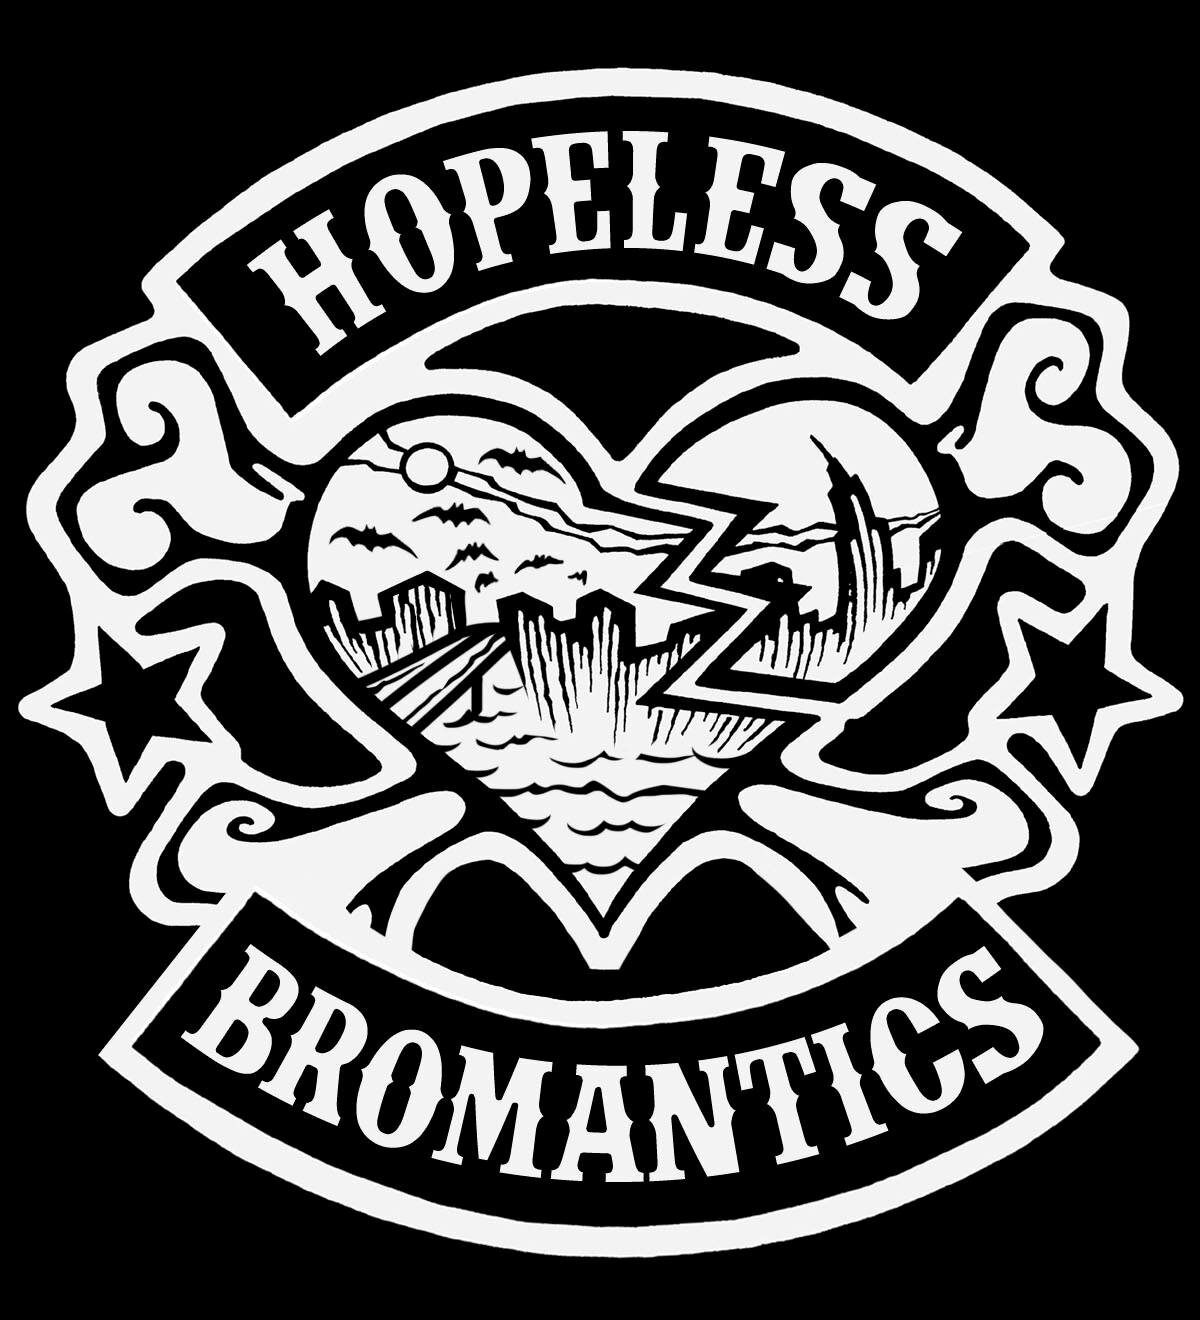 The Hopeless Bromantics - Plain and simple, this is Dylan's Bouncing Souls cover band (he is the vocalist) that features members from other local Austin bands such as Threes Away, Sorted Scoundrels, and The Butts. They still play shows to this date.